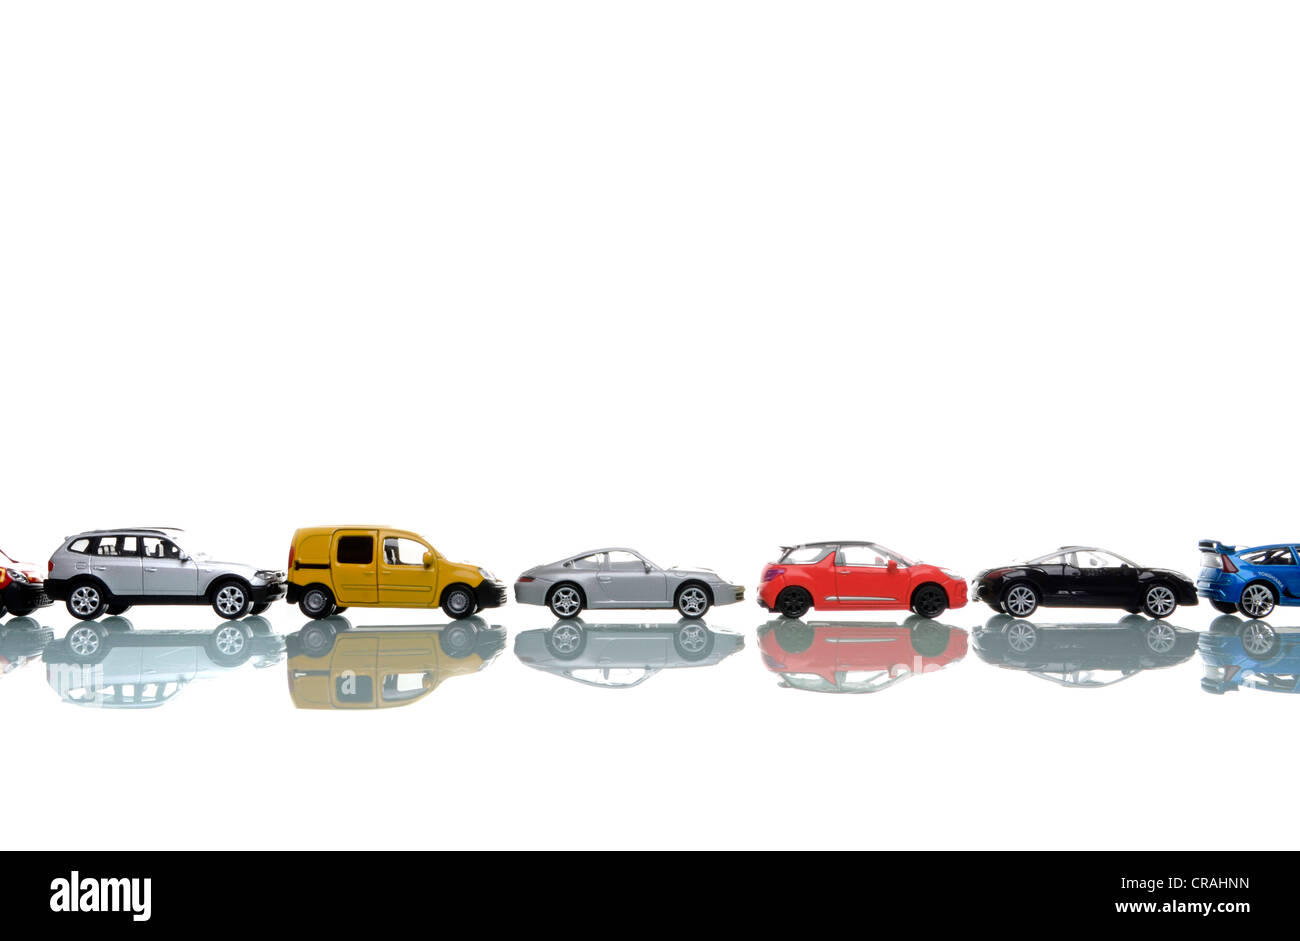 Miniature cars in a row - Stock Image